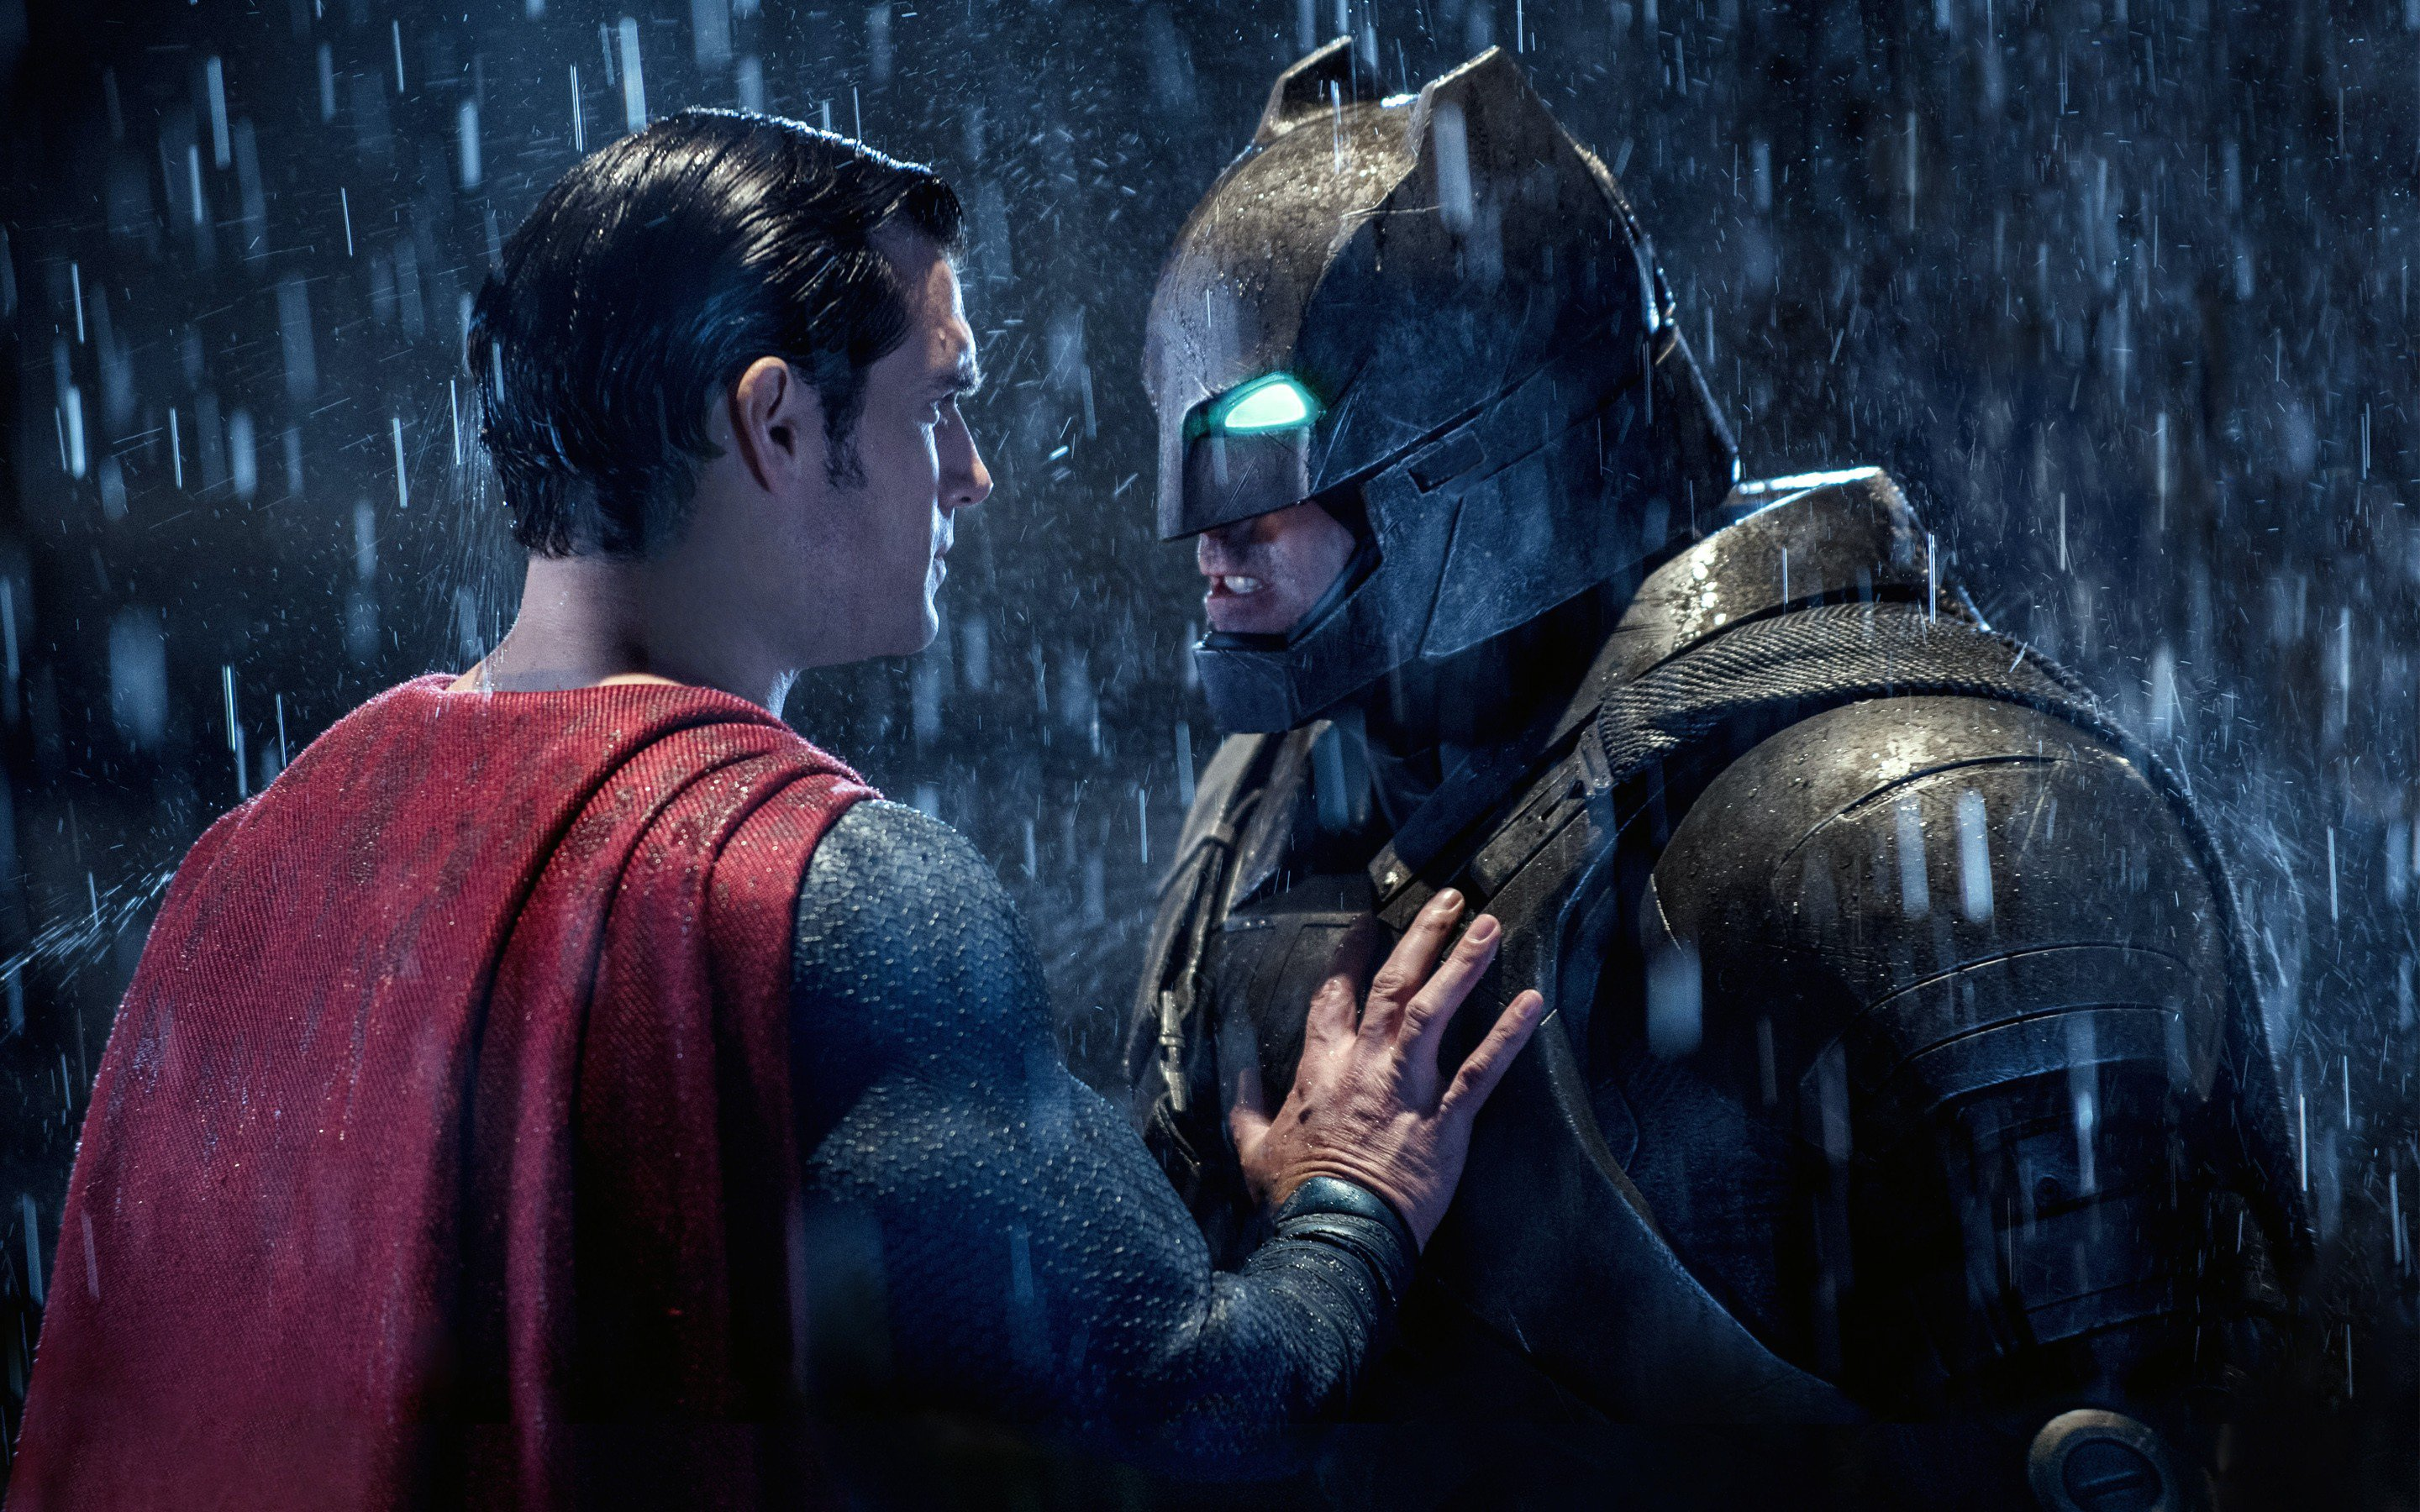 review-zack-snyders-batman-v-superman-dawn-of-justice-starring-ben-affleck-henry-cavill-jesse-eisenberg-amy-adams-more-1